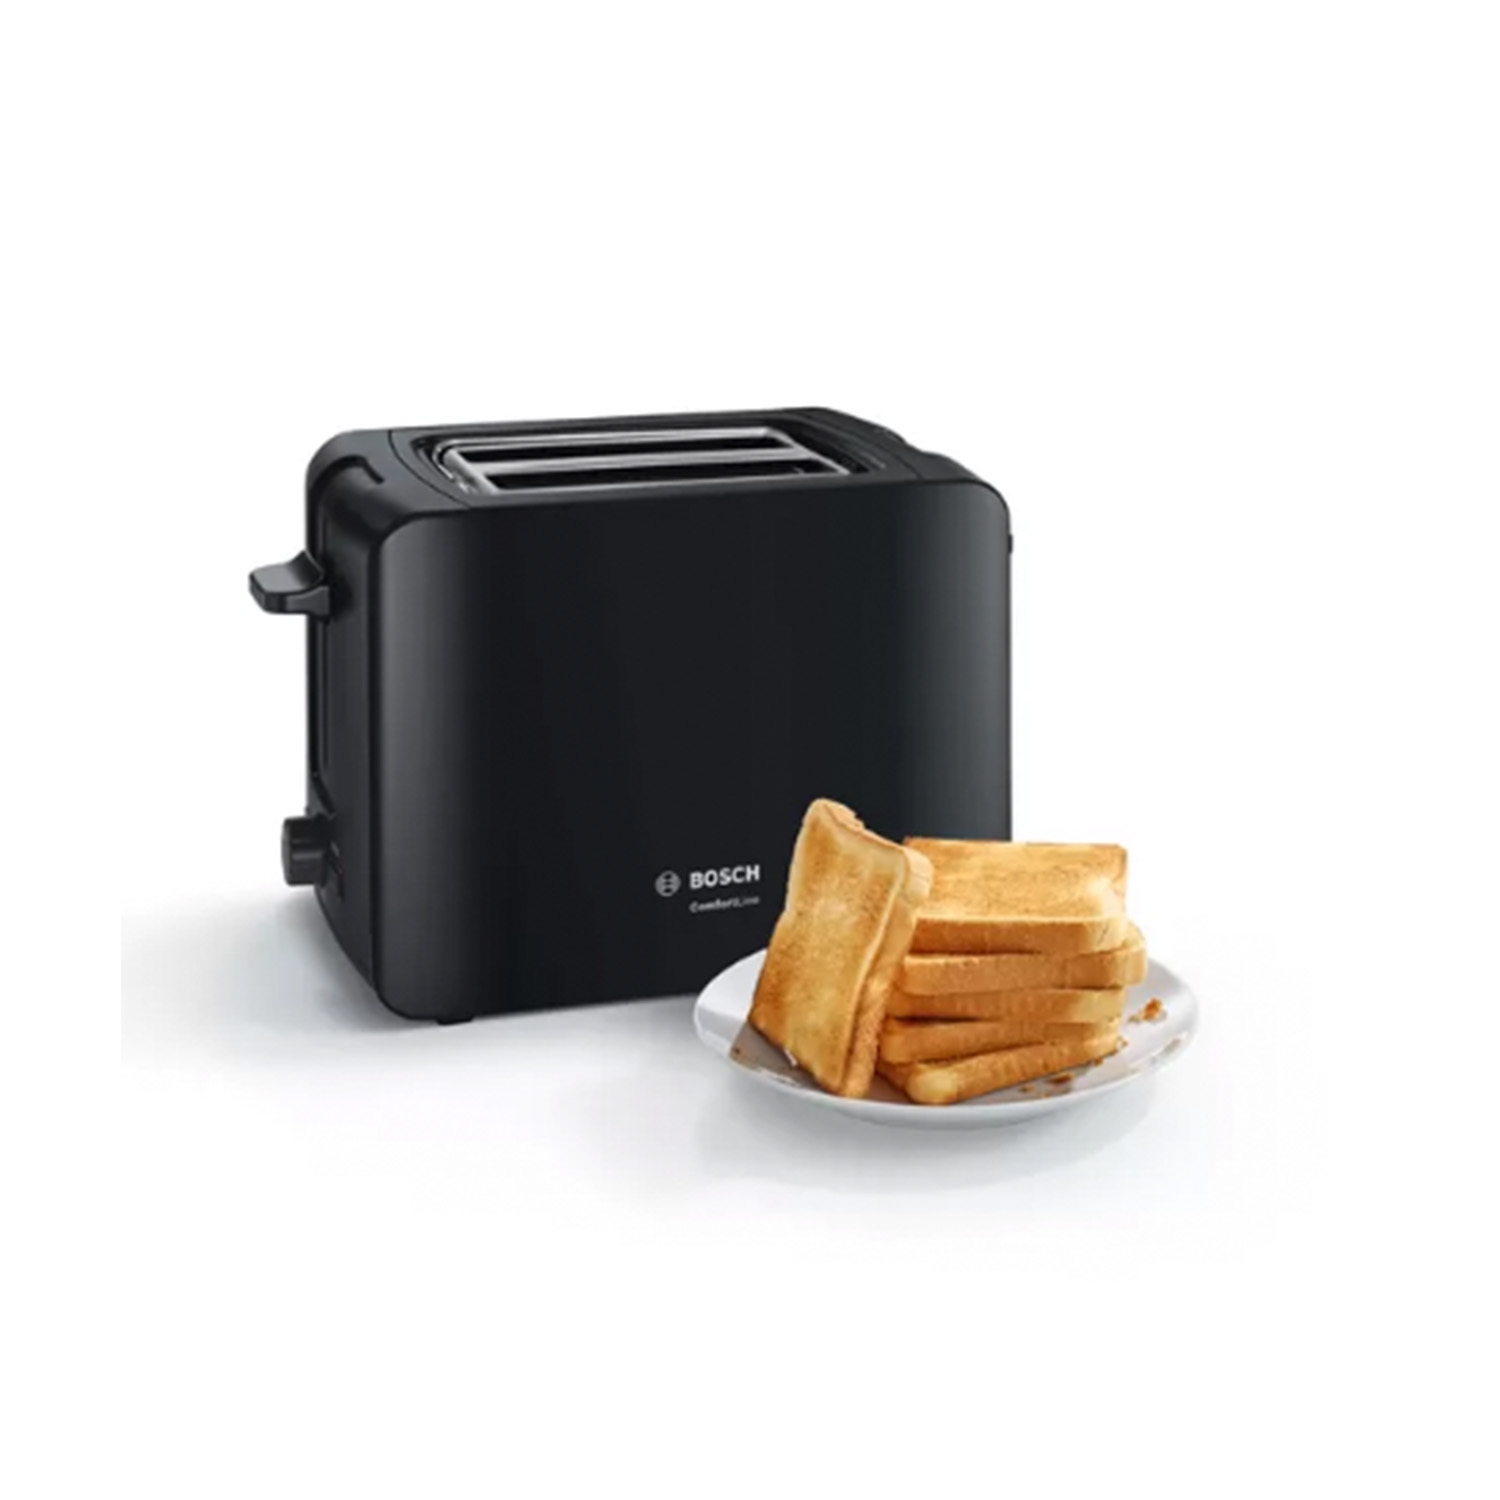 Bosch 2 Slice Toaster - Black - 0